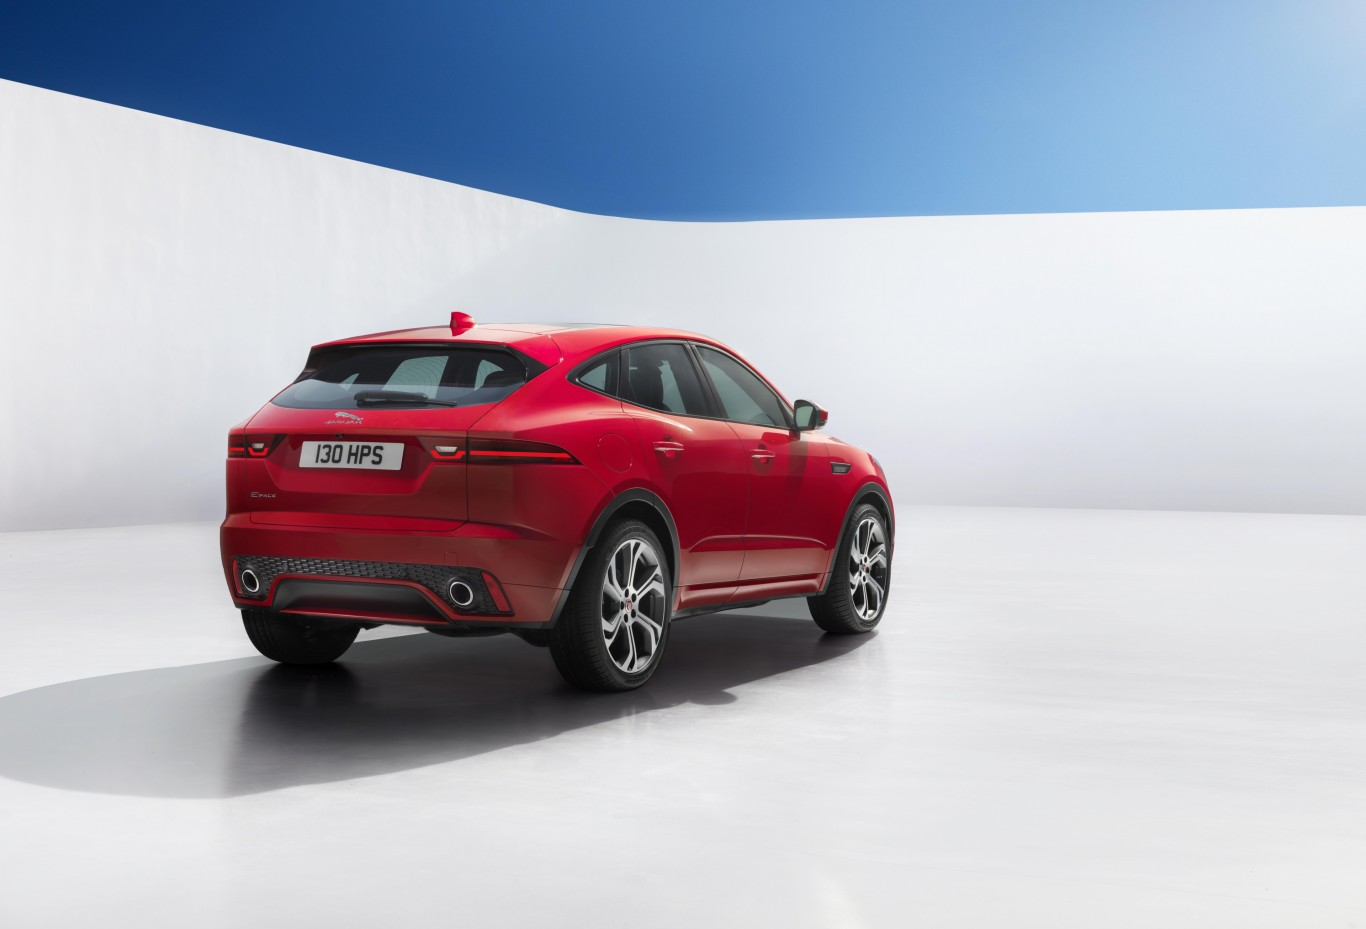 Jaguar E-Pace Unveiled With Plenty of F-Type Influence